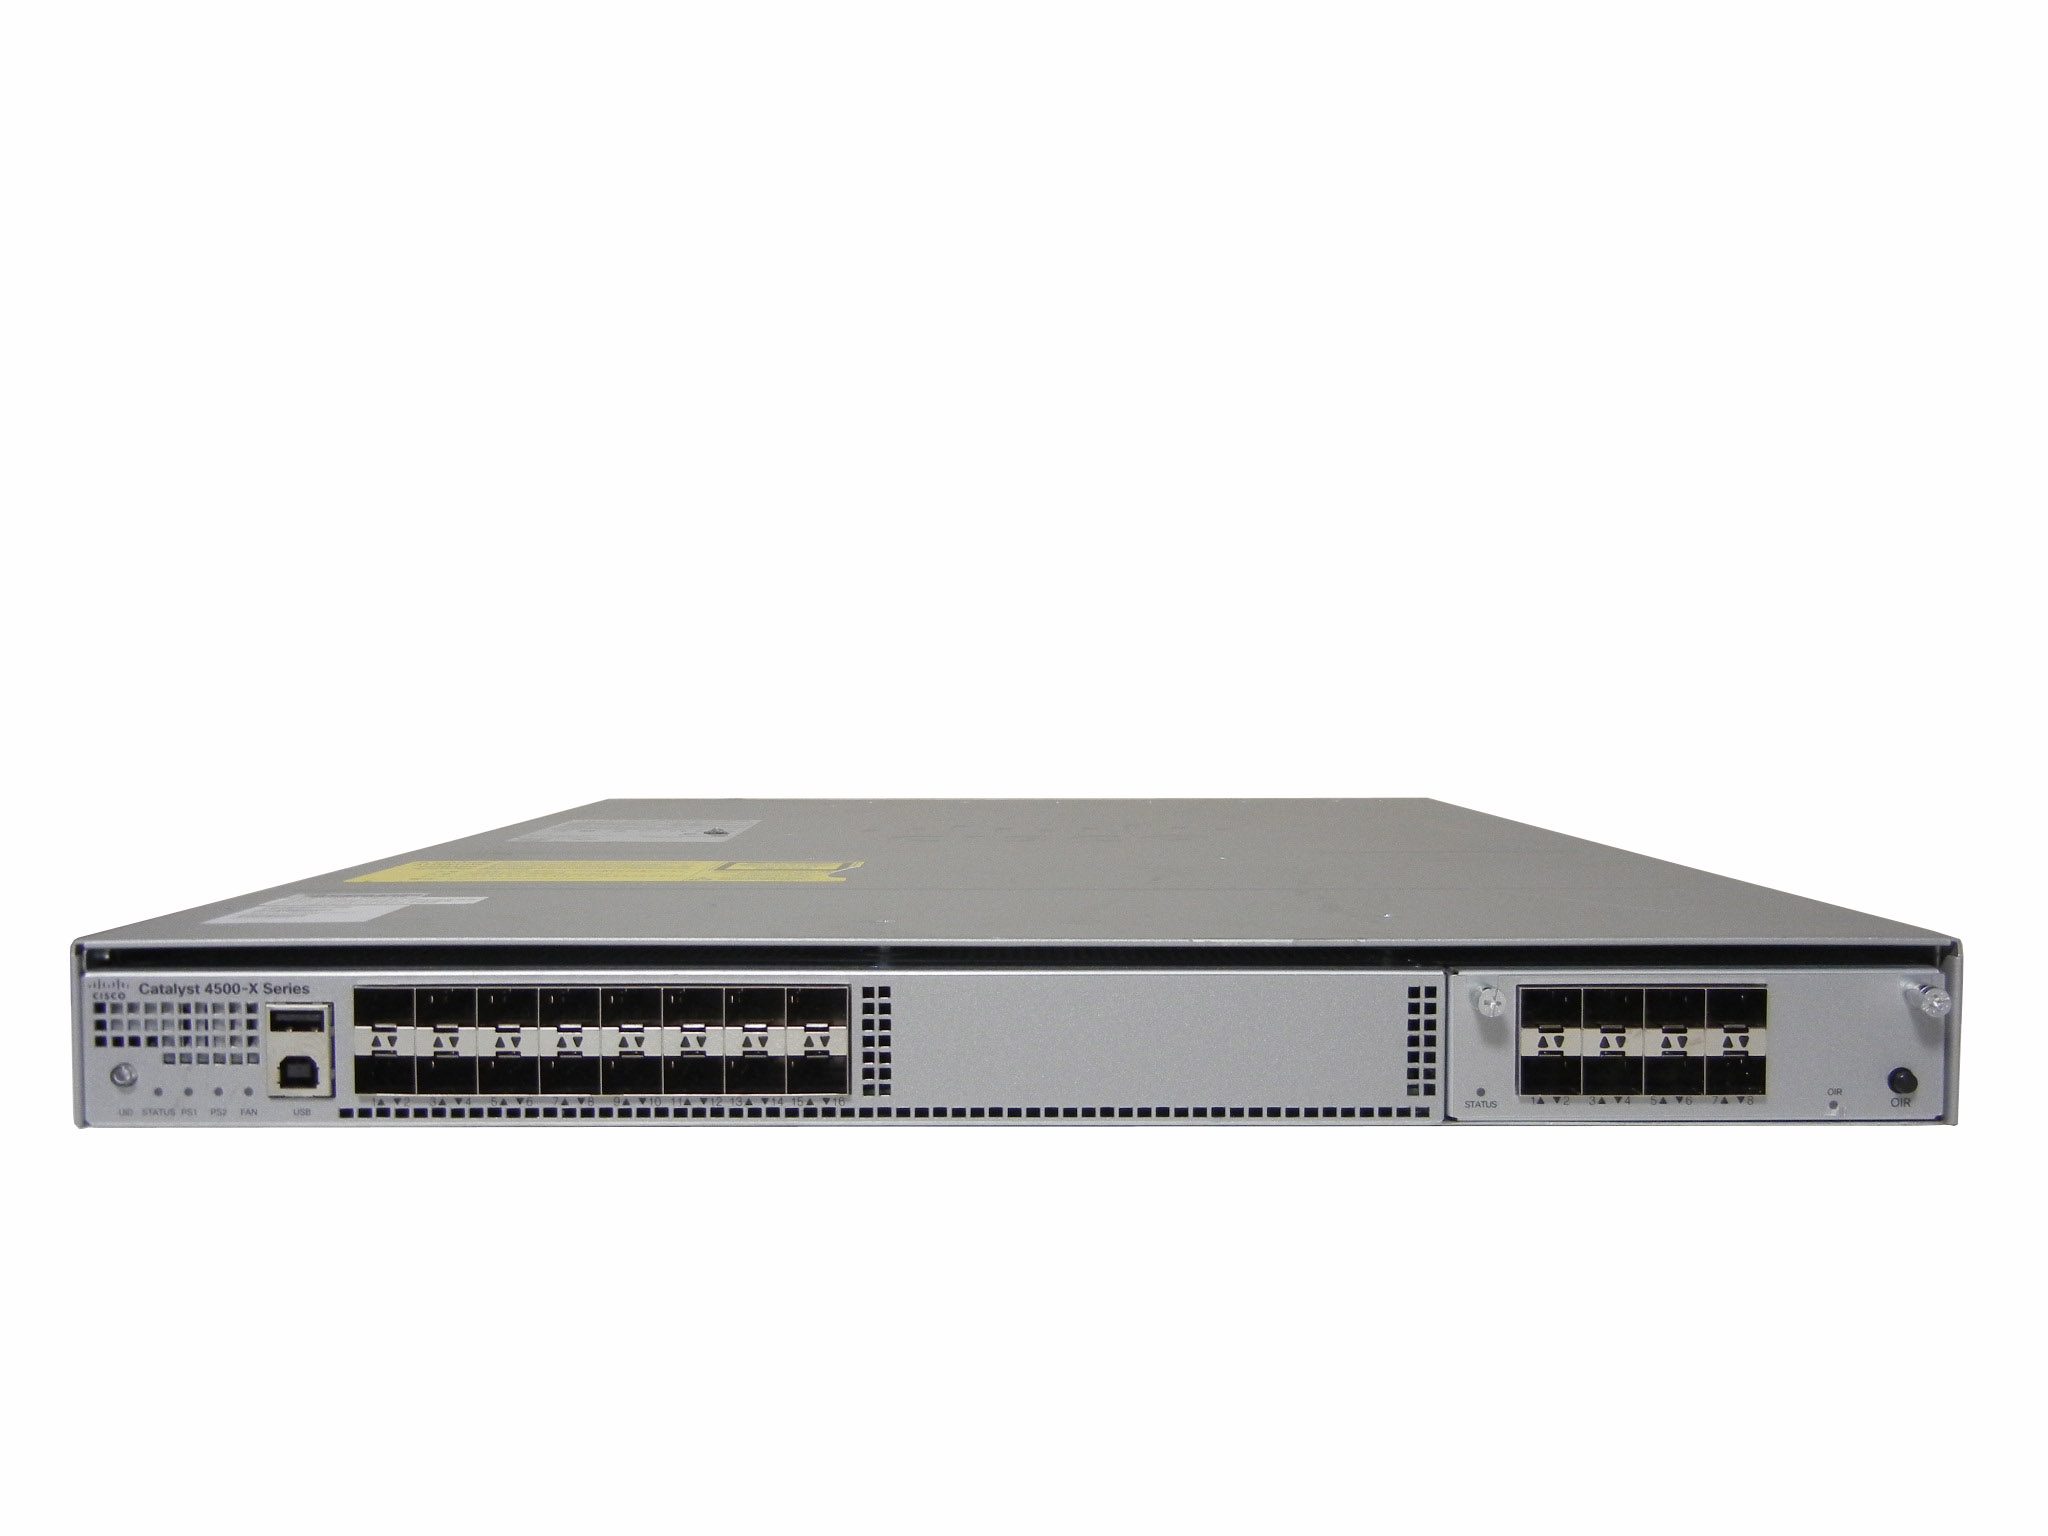 【中古】Cisco  Catalyst 4500X-16SFP+ (WS-C4500X-16SFP+) C4KX-NM-8SFP+モジュール付き 電源二重仕様